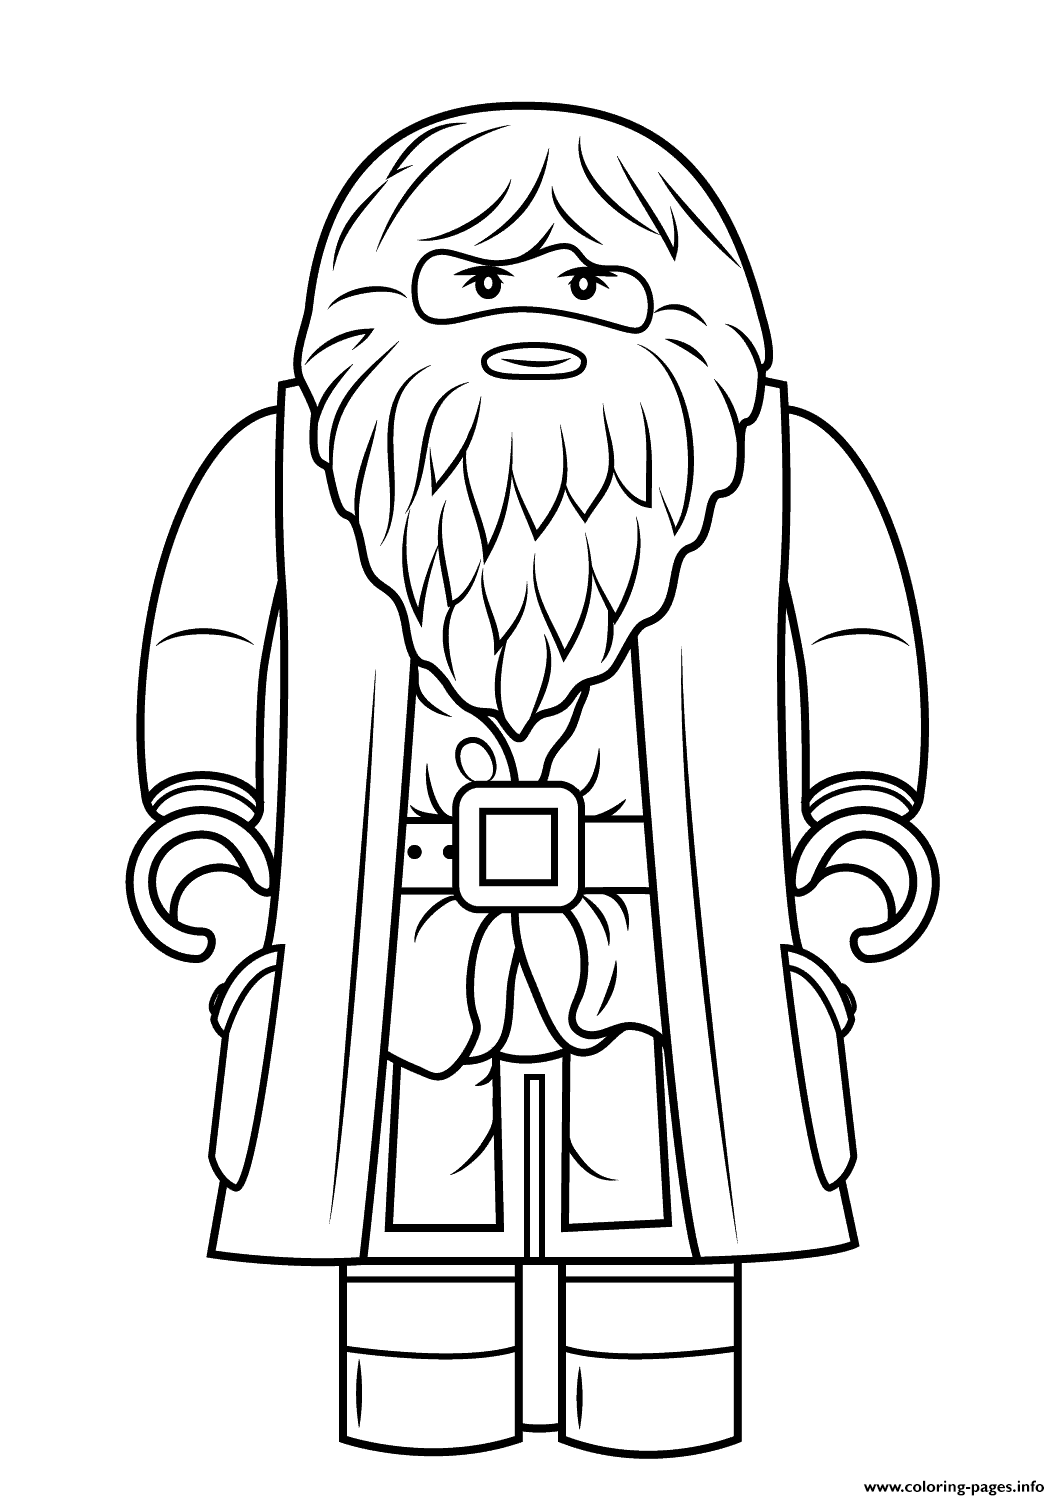 1060x1500 Harry Potter Coloring Pages To Print